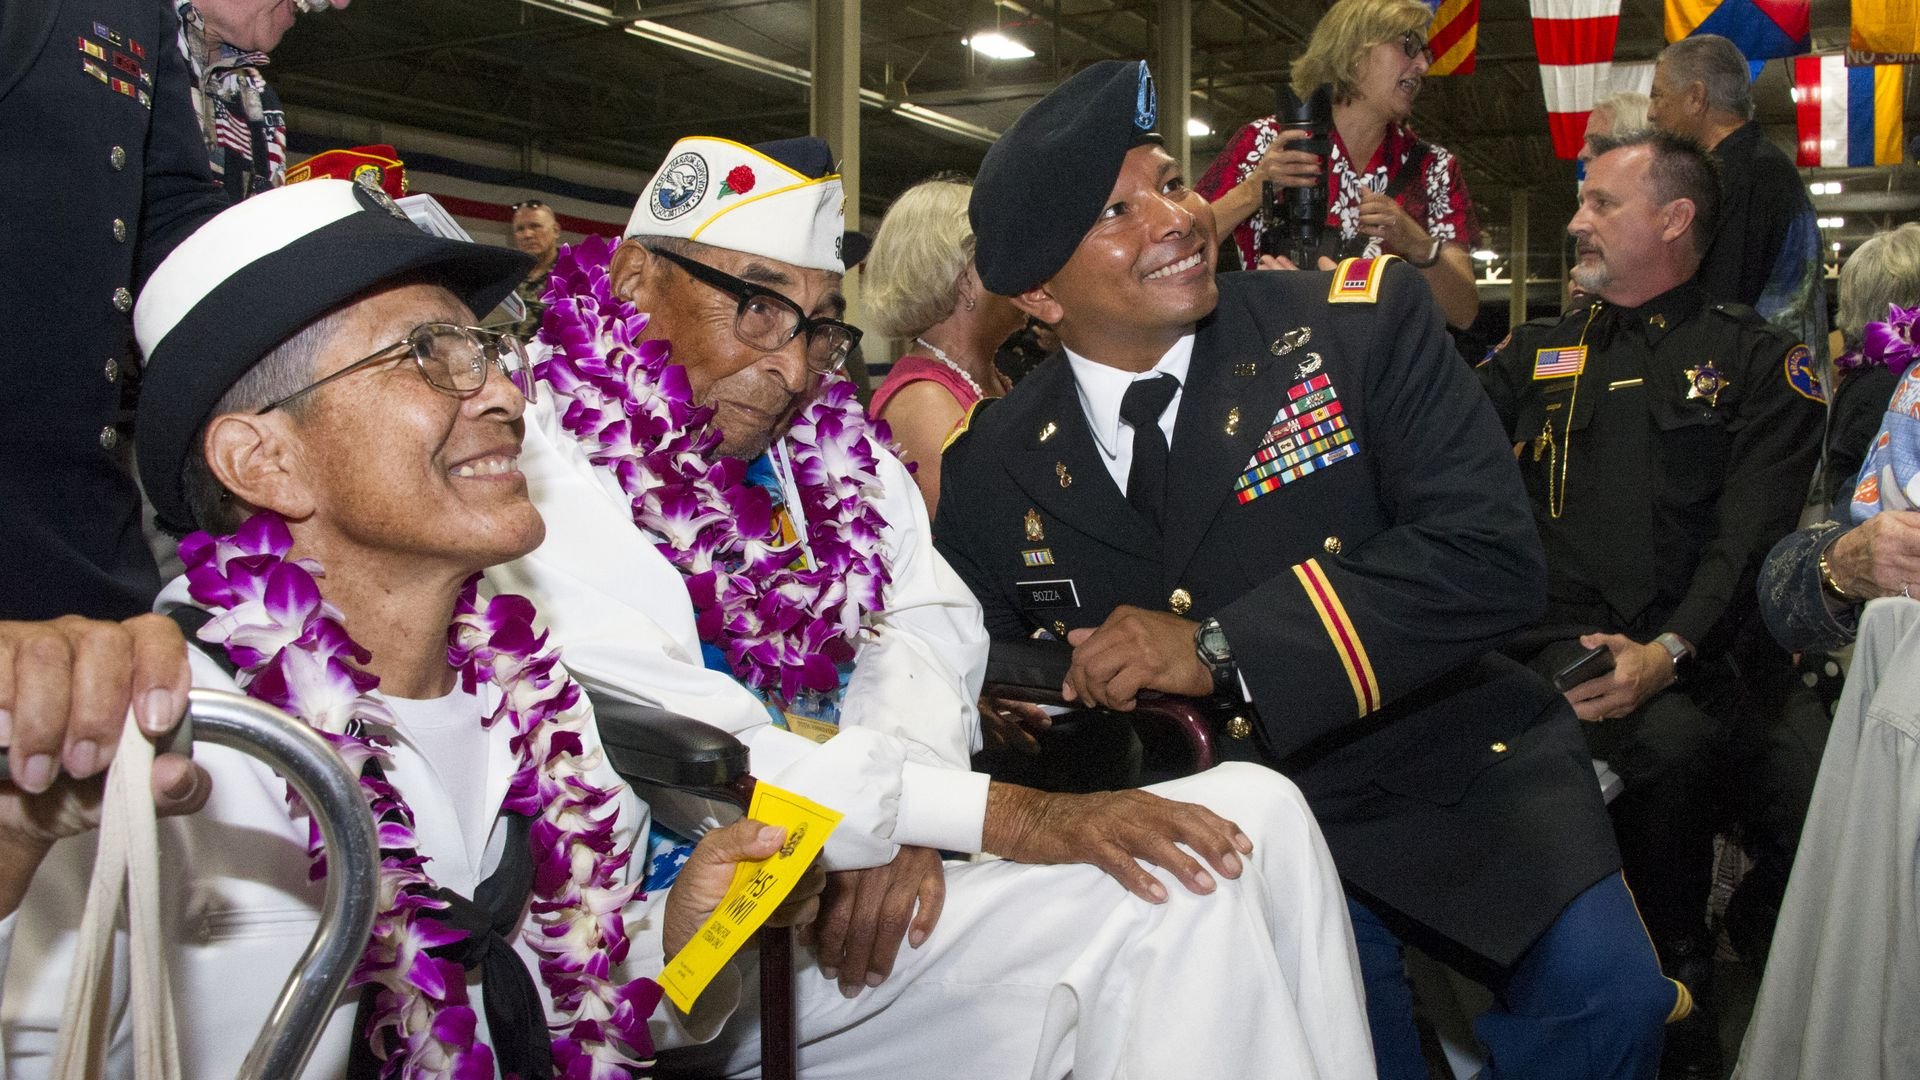 Pearl Harbor survivor Ray Chavez during a ceremony commemorating the 75th anniversary of the attack on Pearl Harbor on December 07, 2016 in Honolulu, Hawaii.